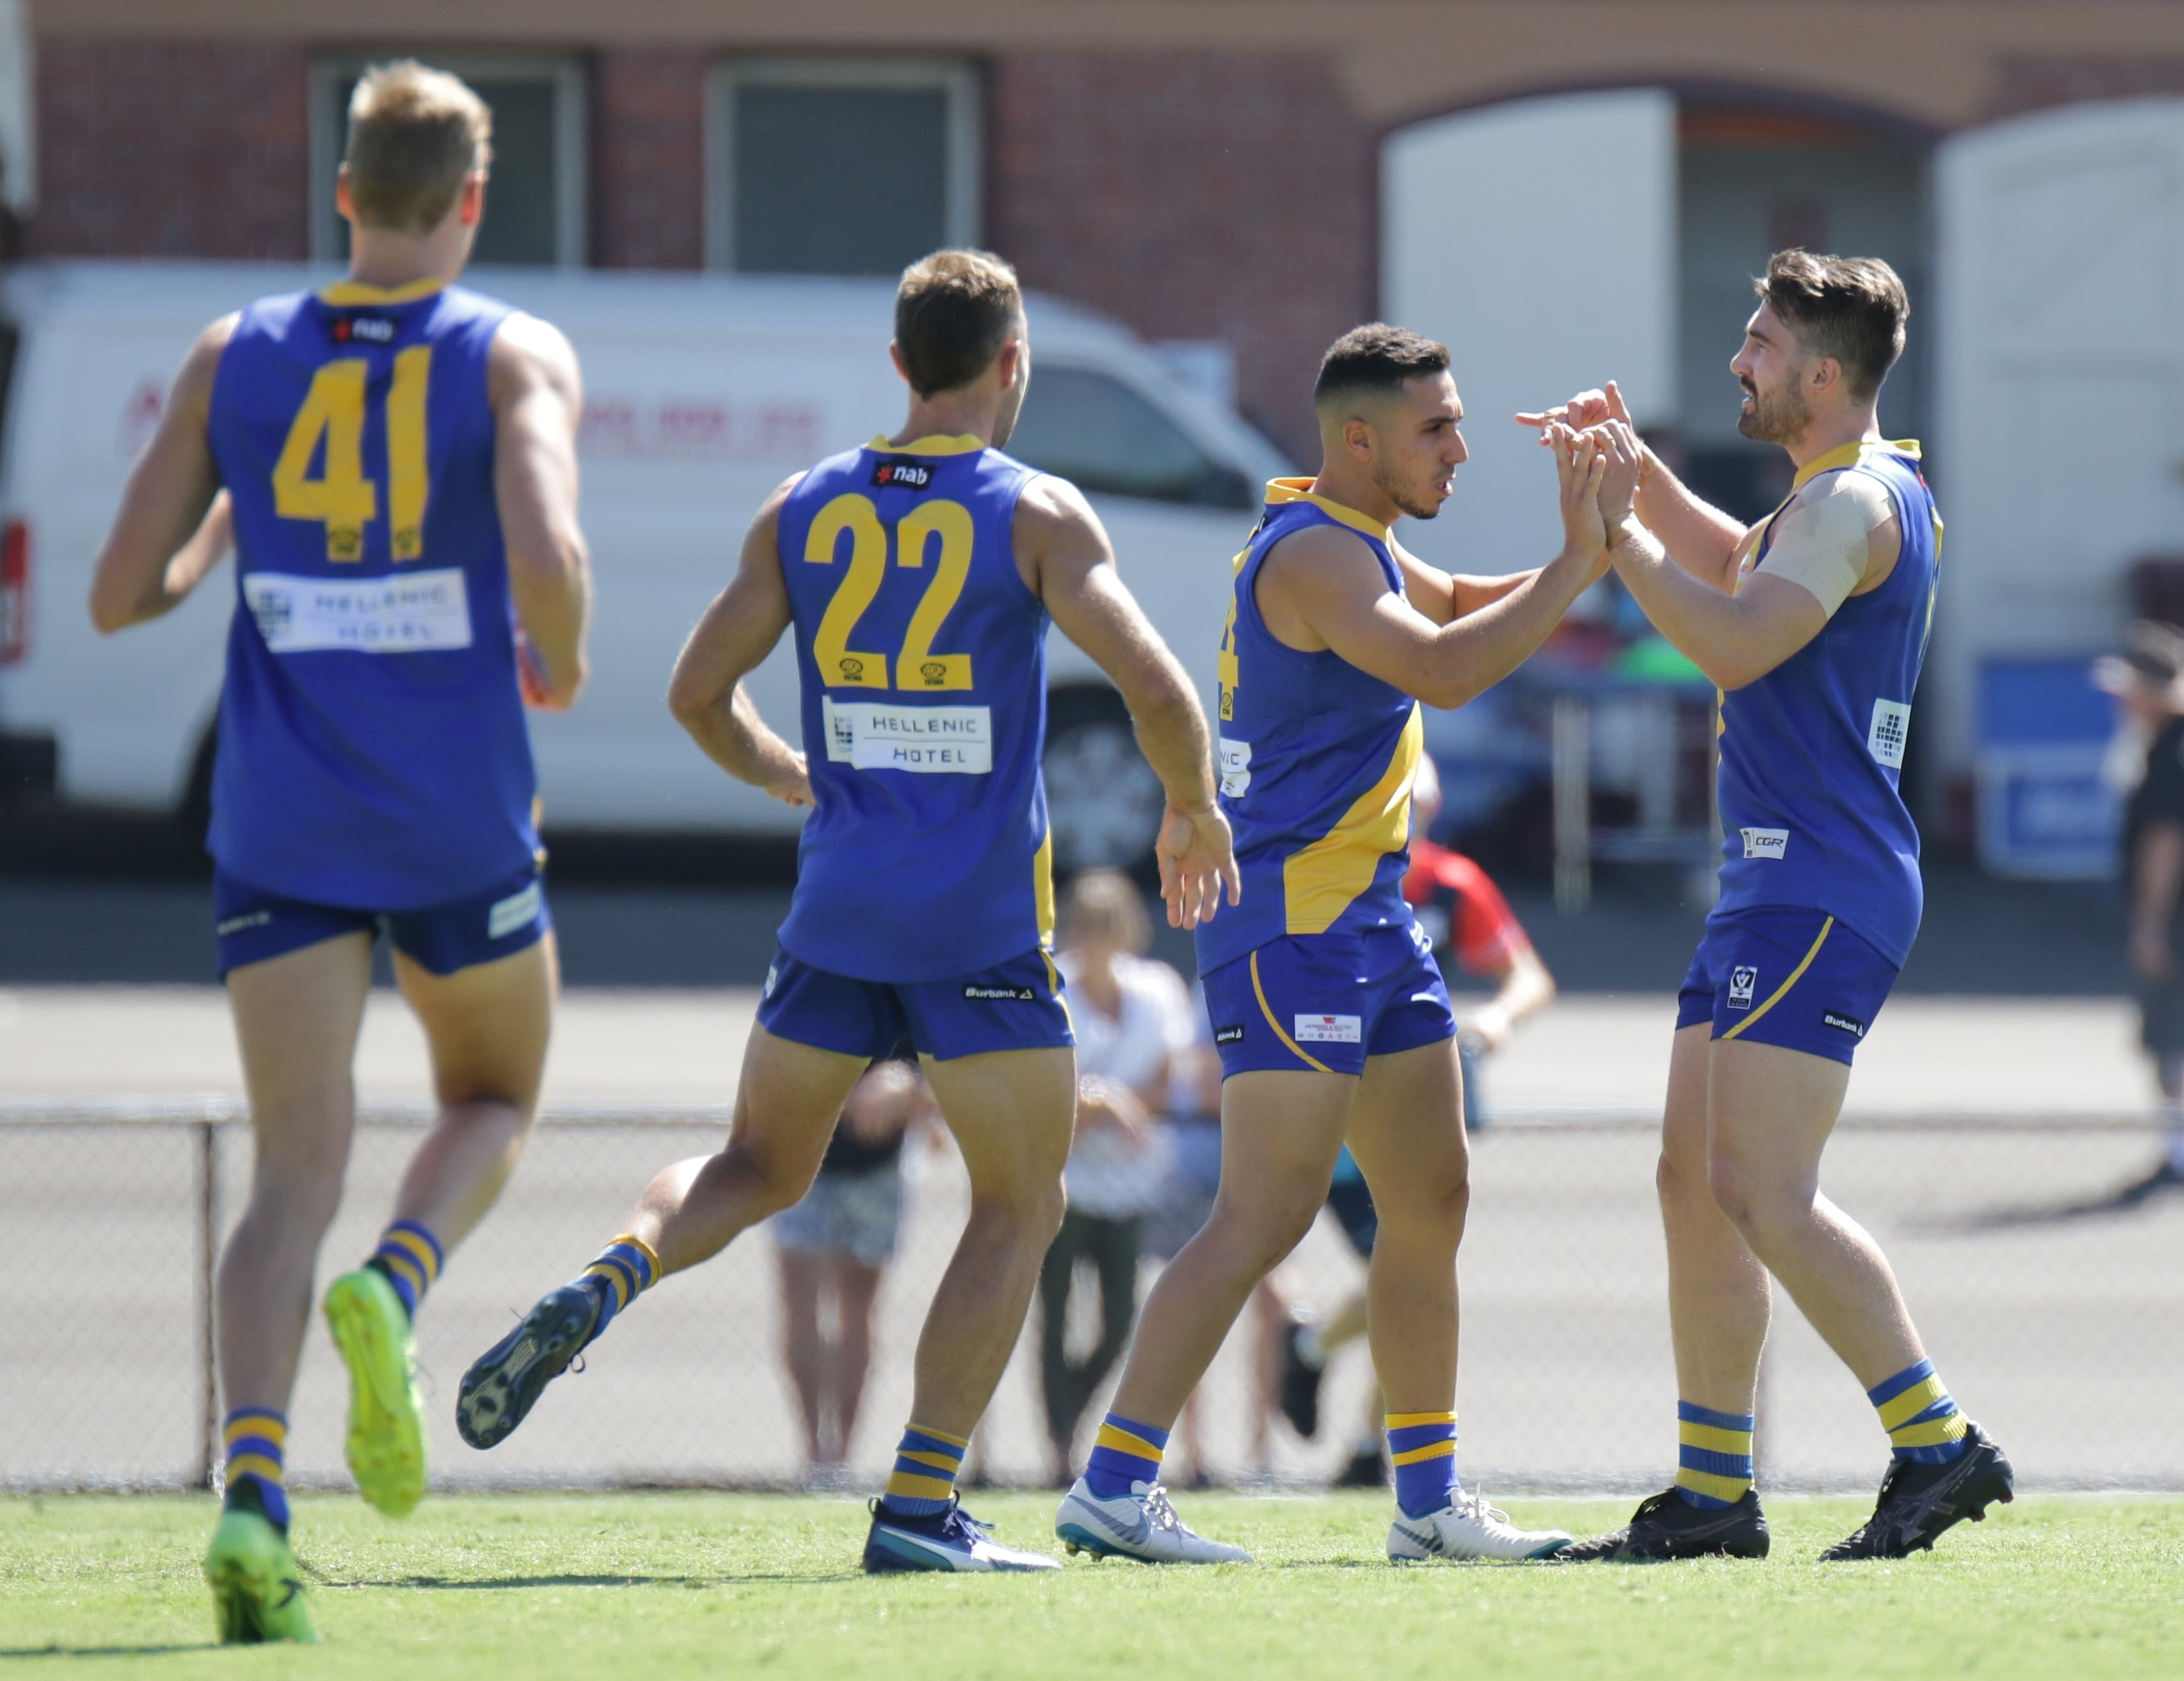 47d29067617 Seagulls name squad for North Practice Match - Williamstown Football ...